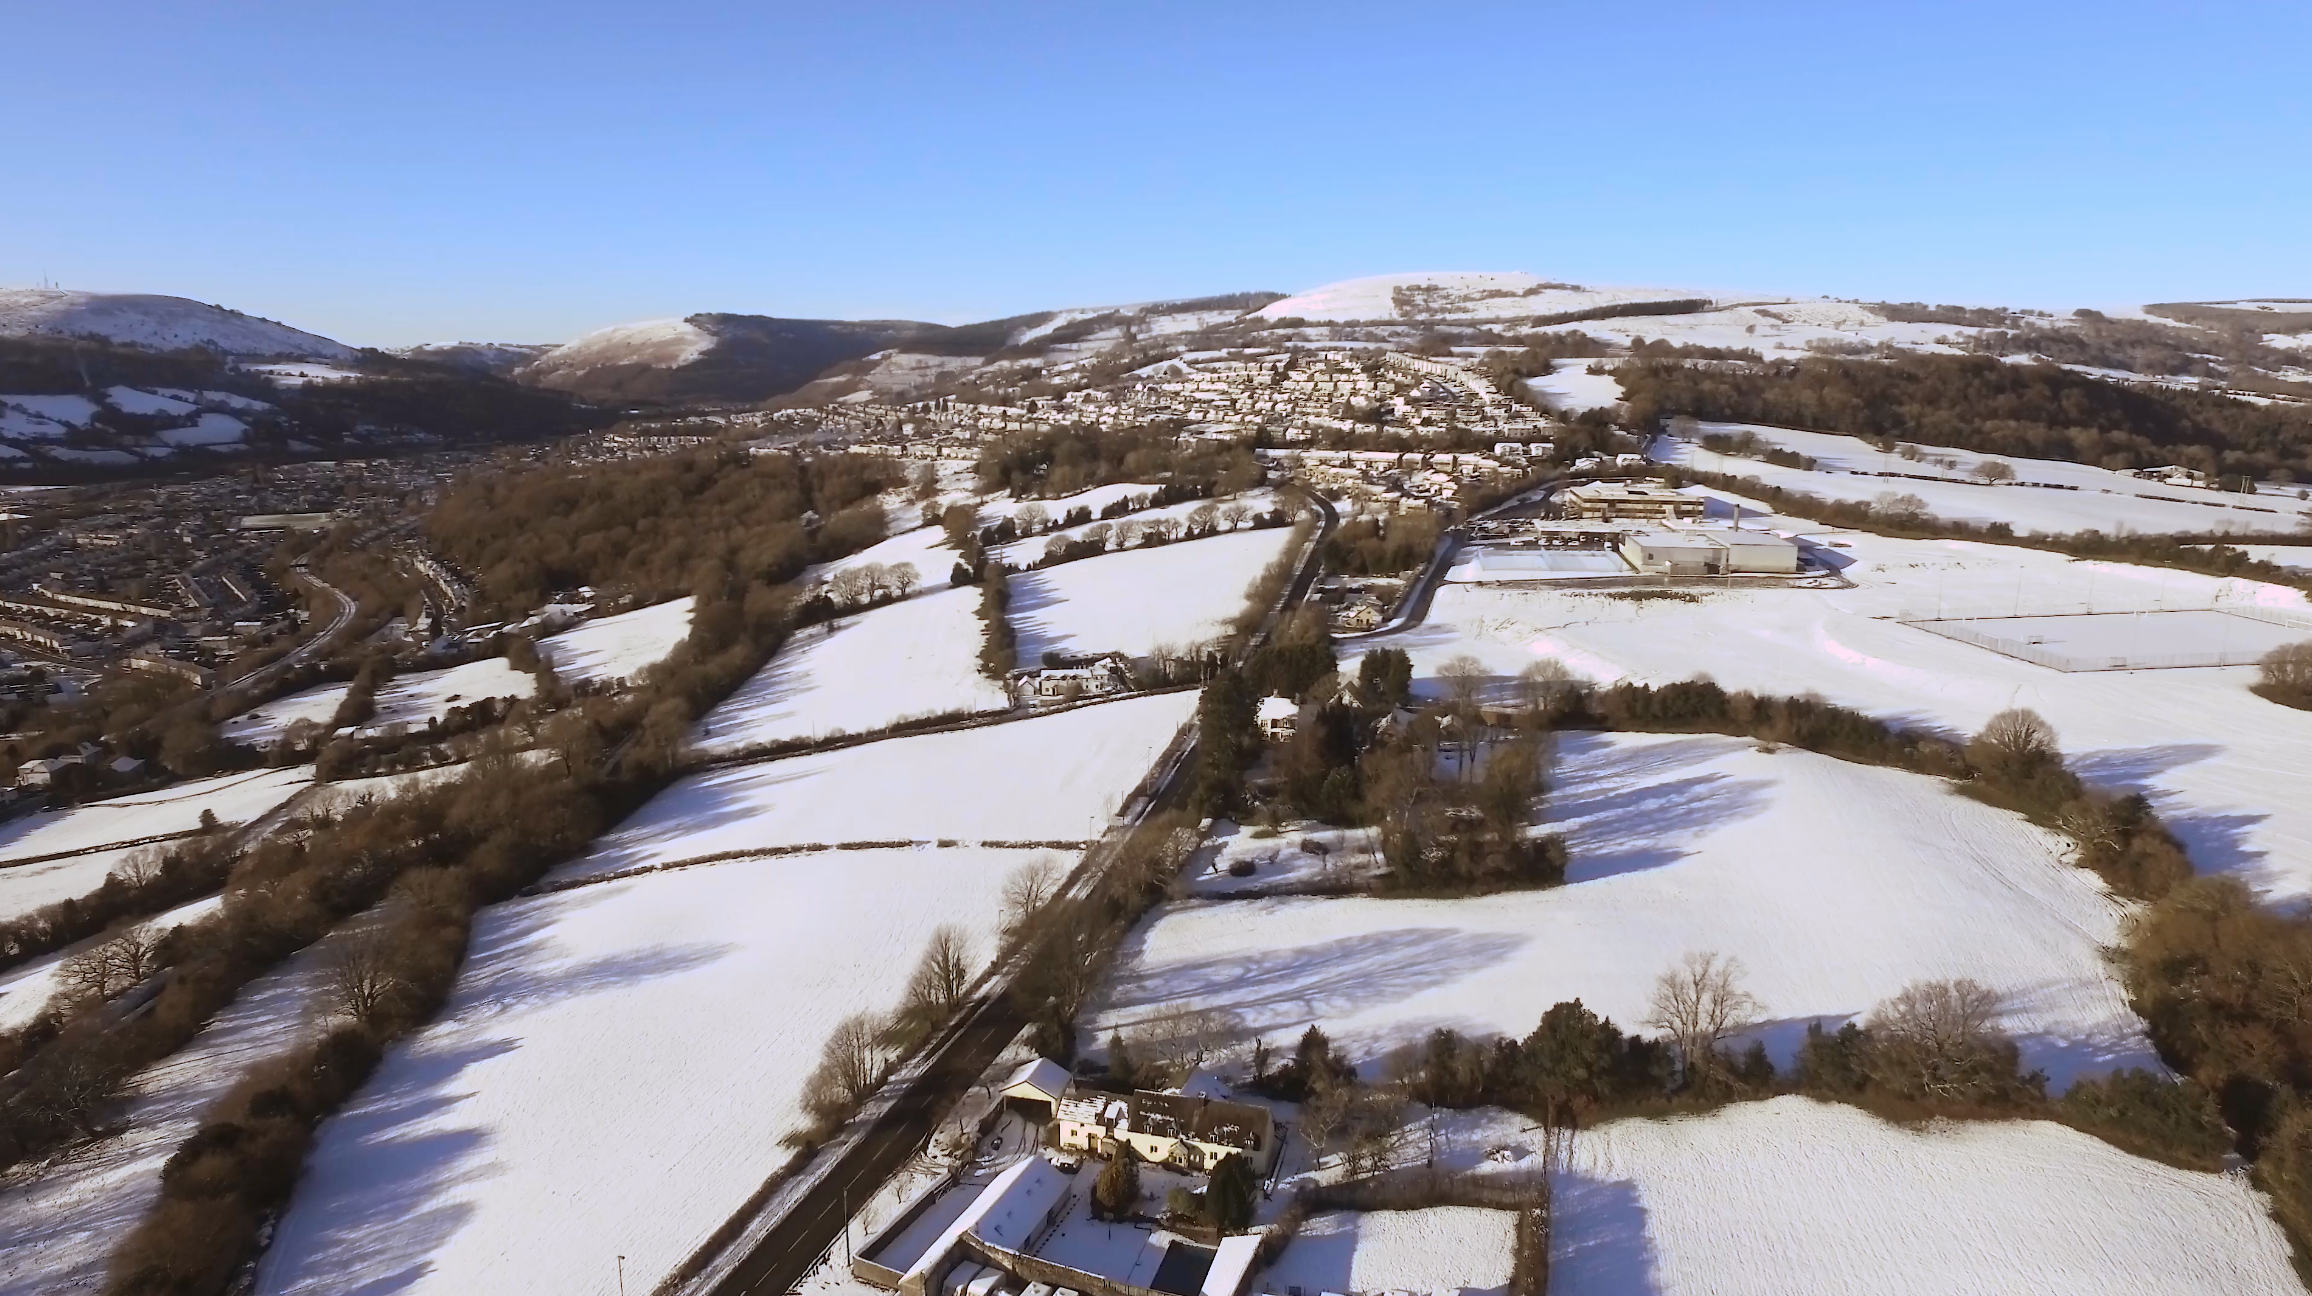 Snow Scene Risca shot by Geoff Harper - Harper Visuals